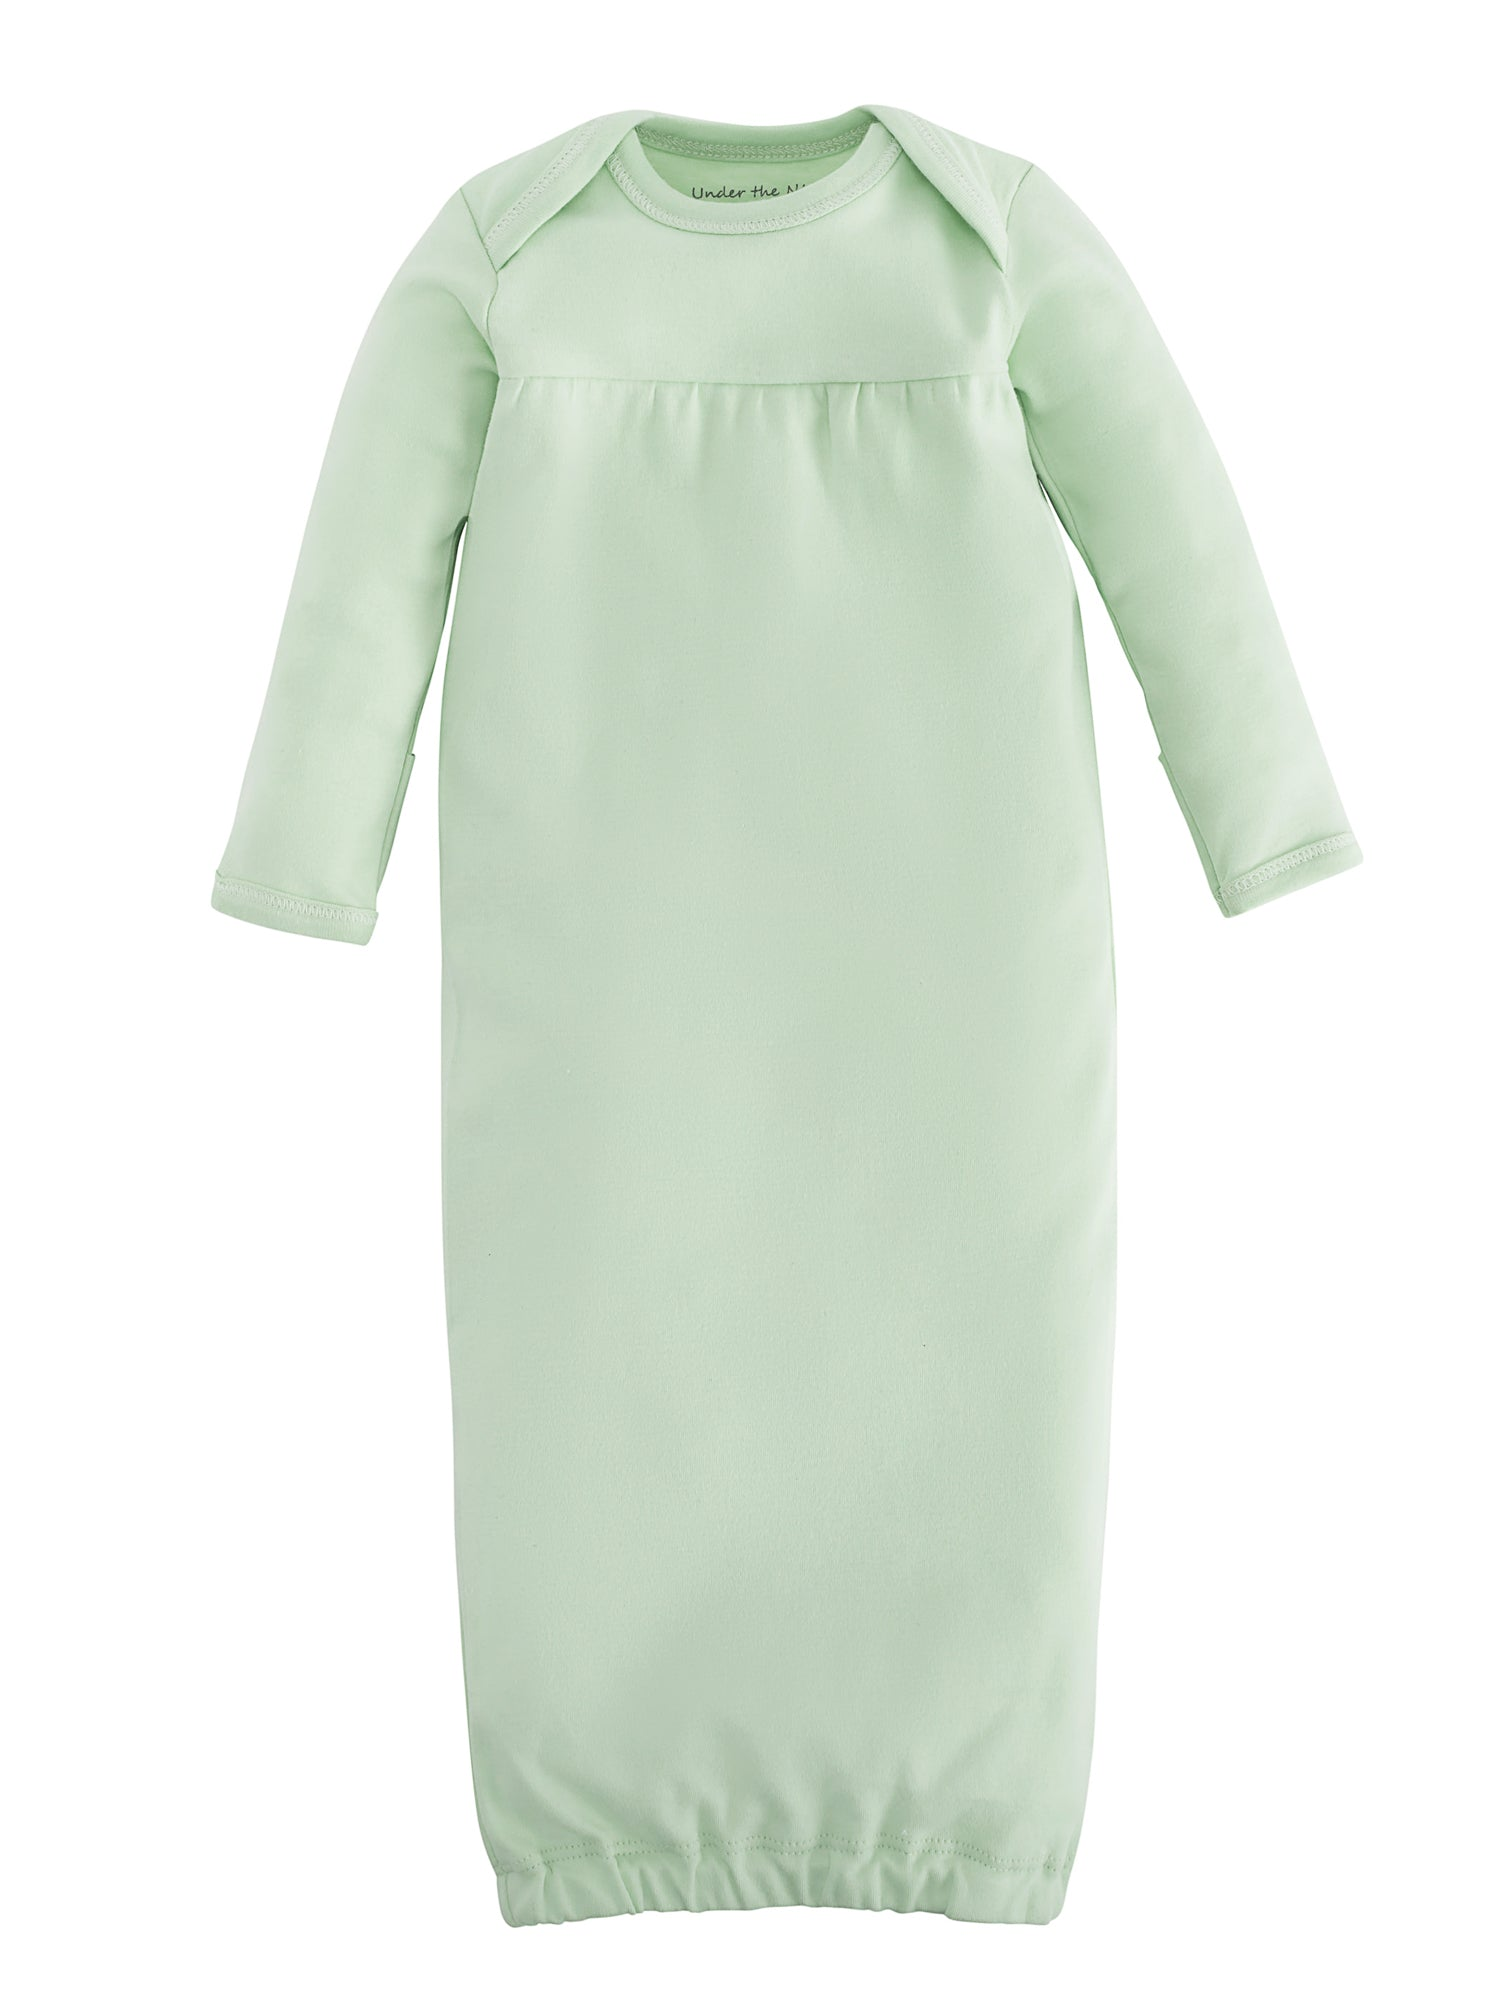 organic-cotton-baby-gown-onesie-sage-green-value-pack